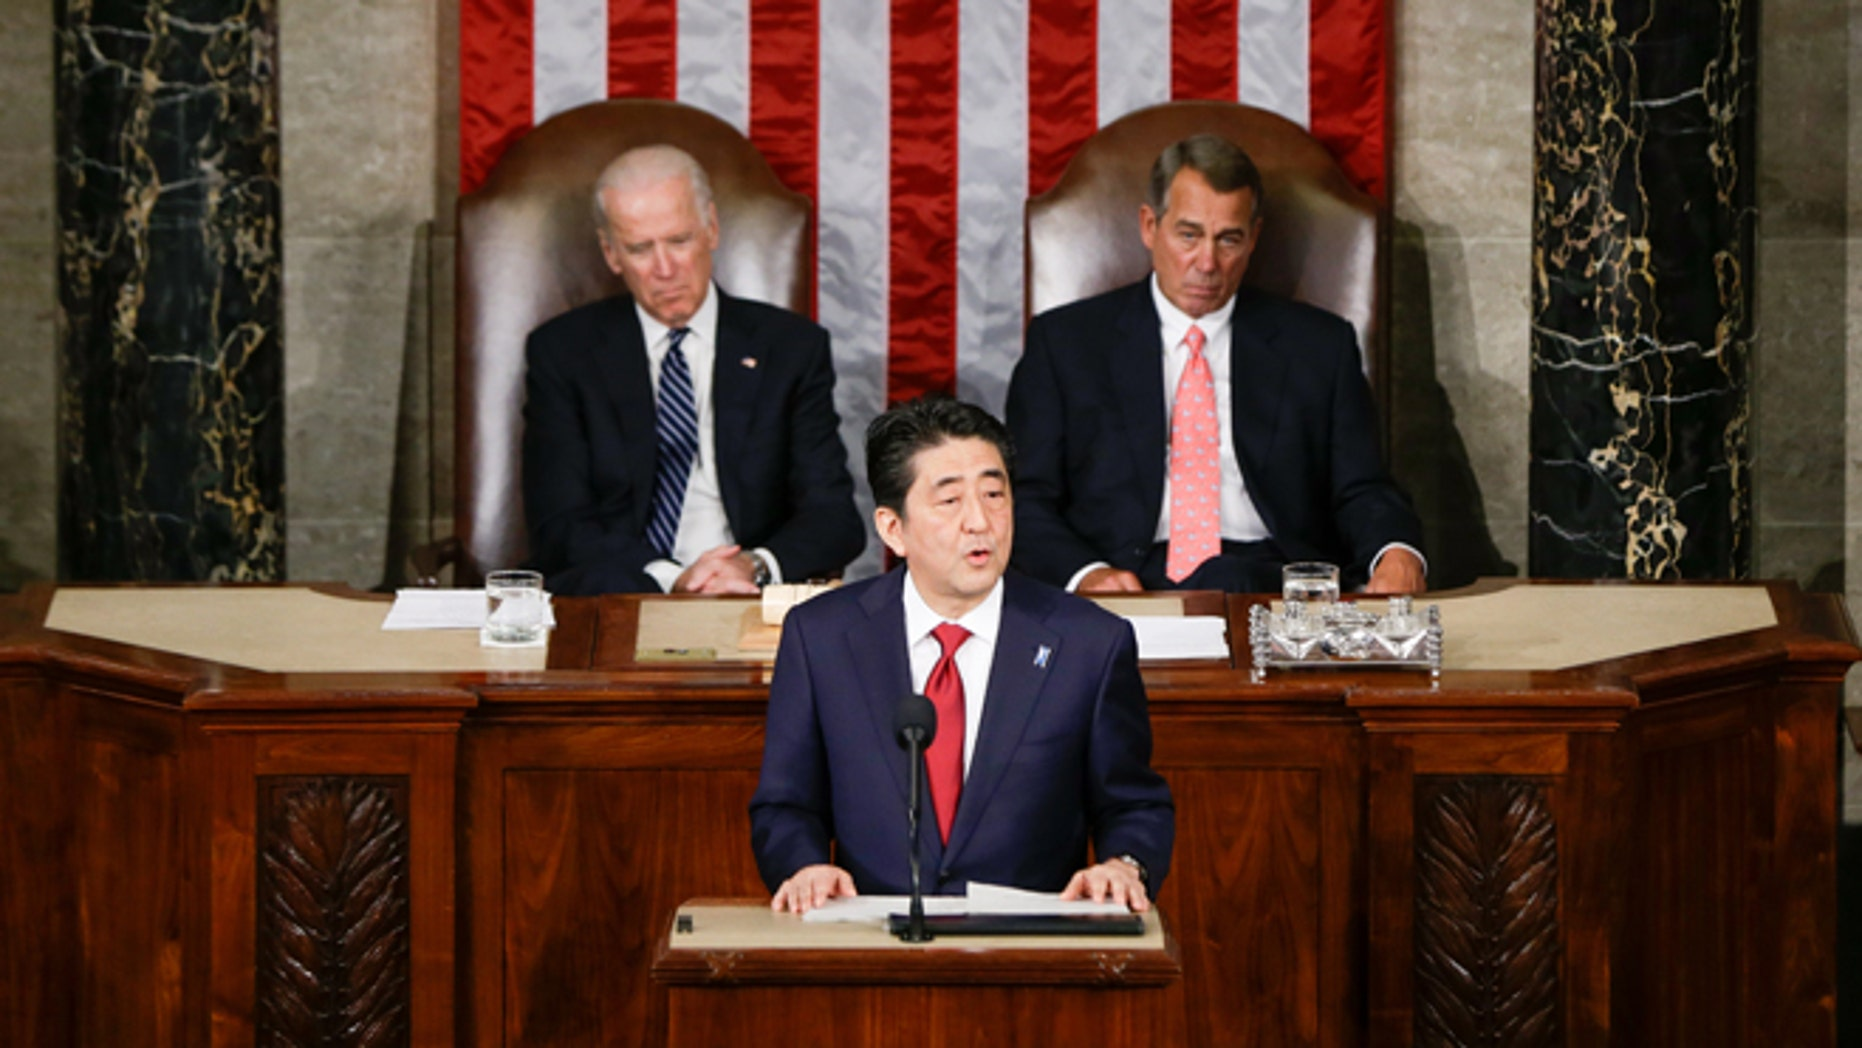 April 29, 2015: Japanese Prime Minister Shinzo Abe speaks before a joint meeting of Congress on Capitol Hill.